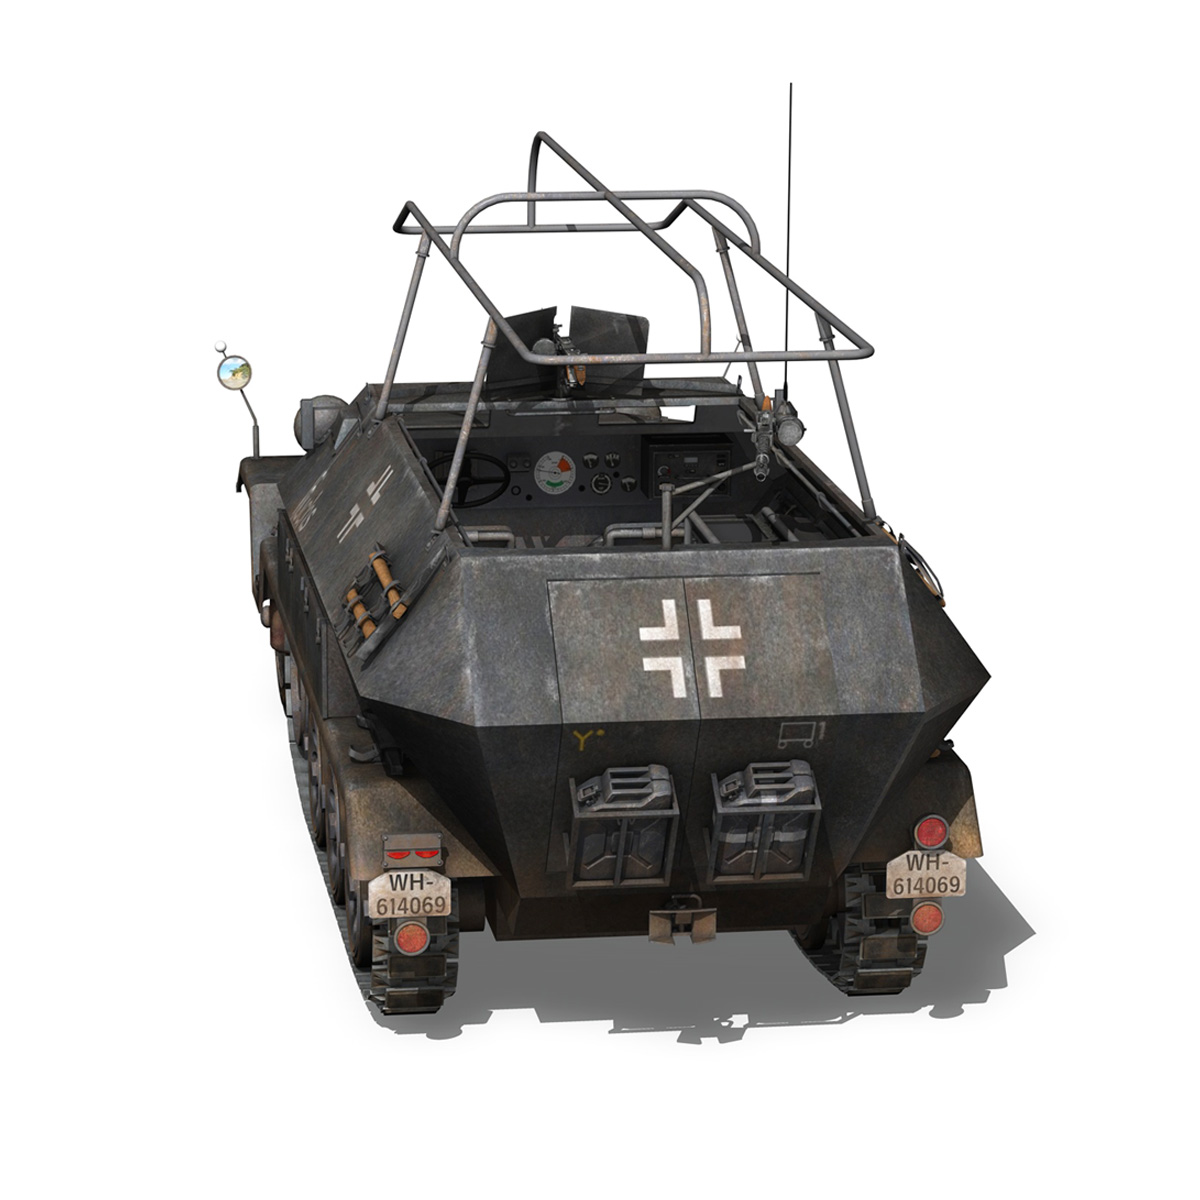 sd.kfz 251 ausf b – communications vehicle – 8pd 3d model 3ds fbx lwo lw lws obj c4d 292029